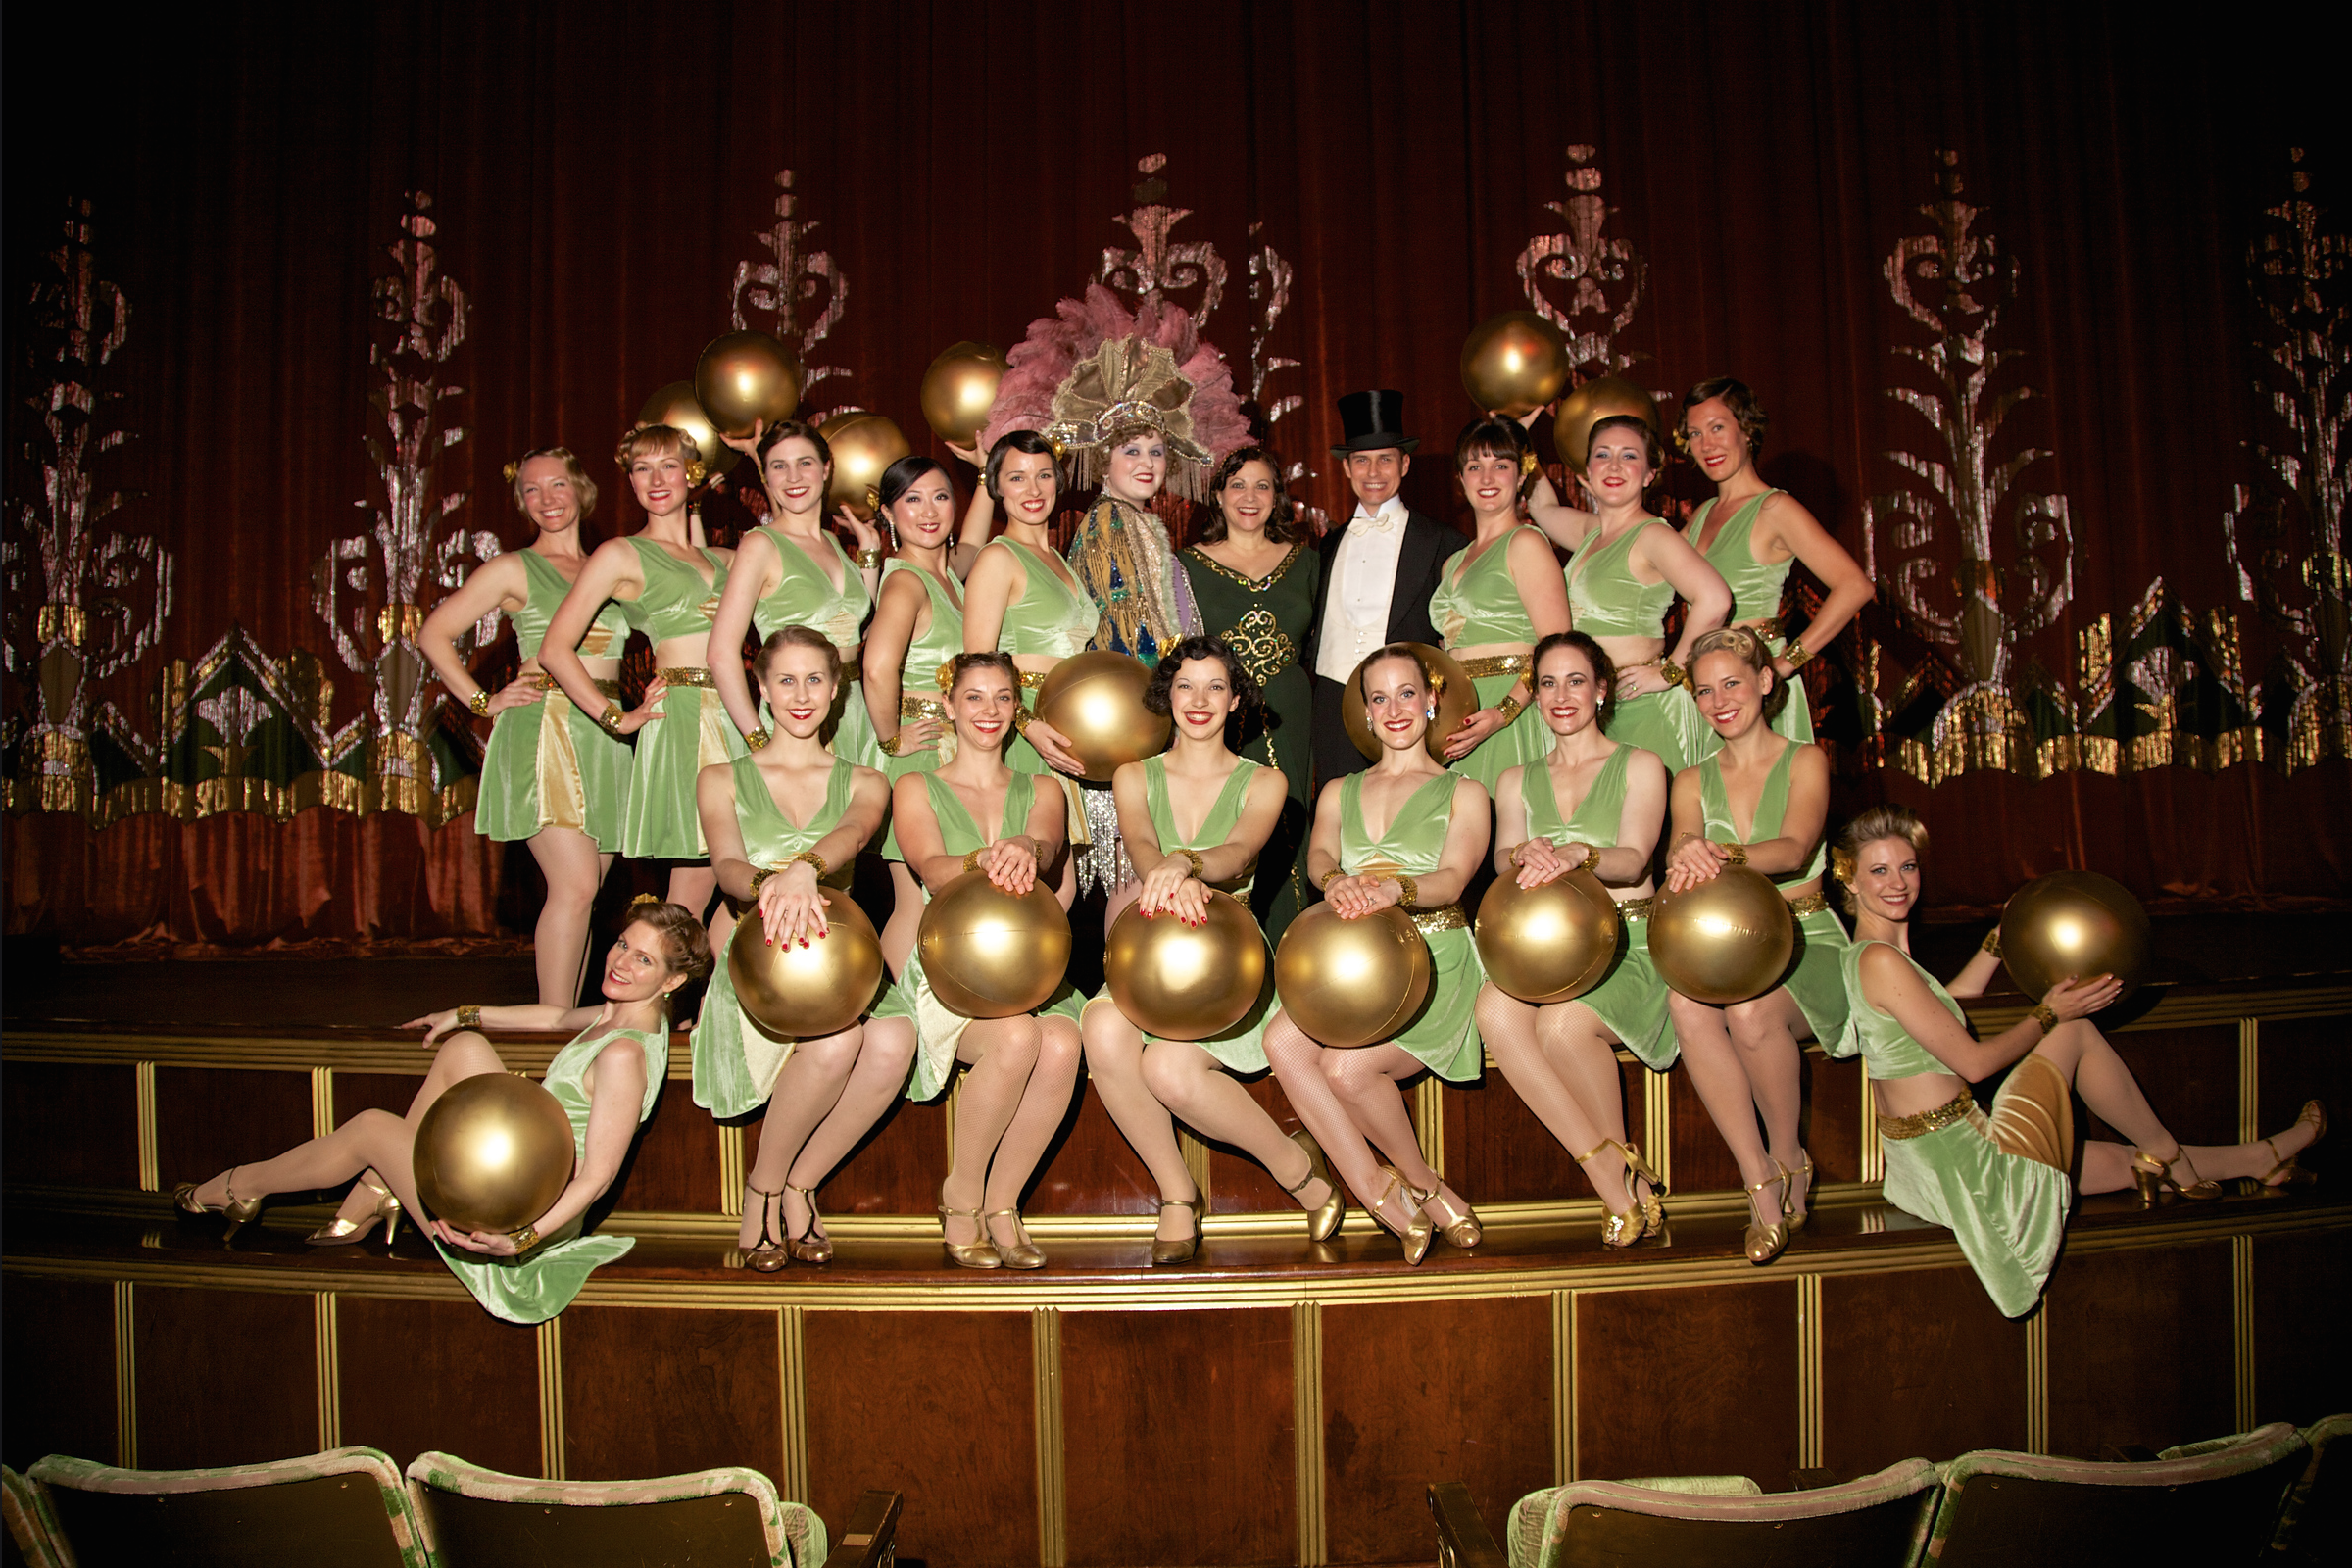 Decobelles at the Art Deco Preservation Ball